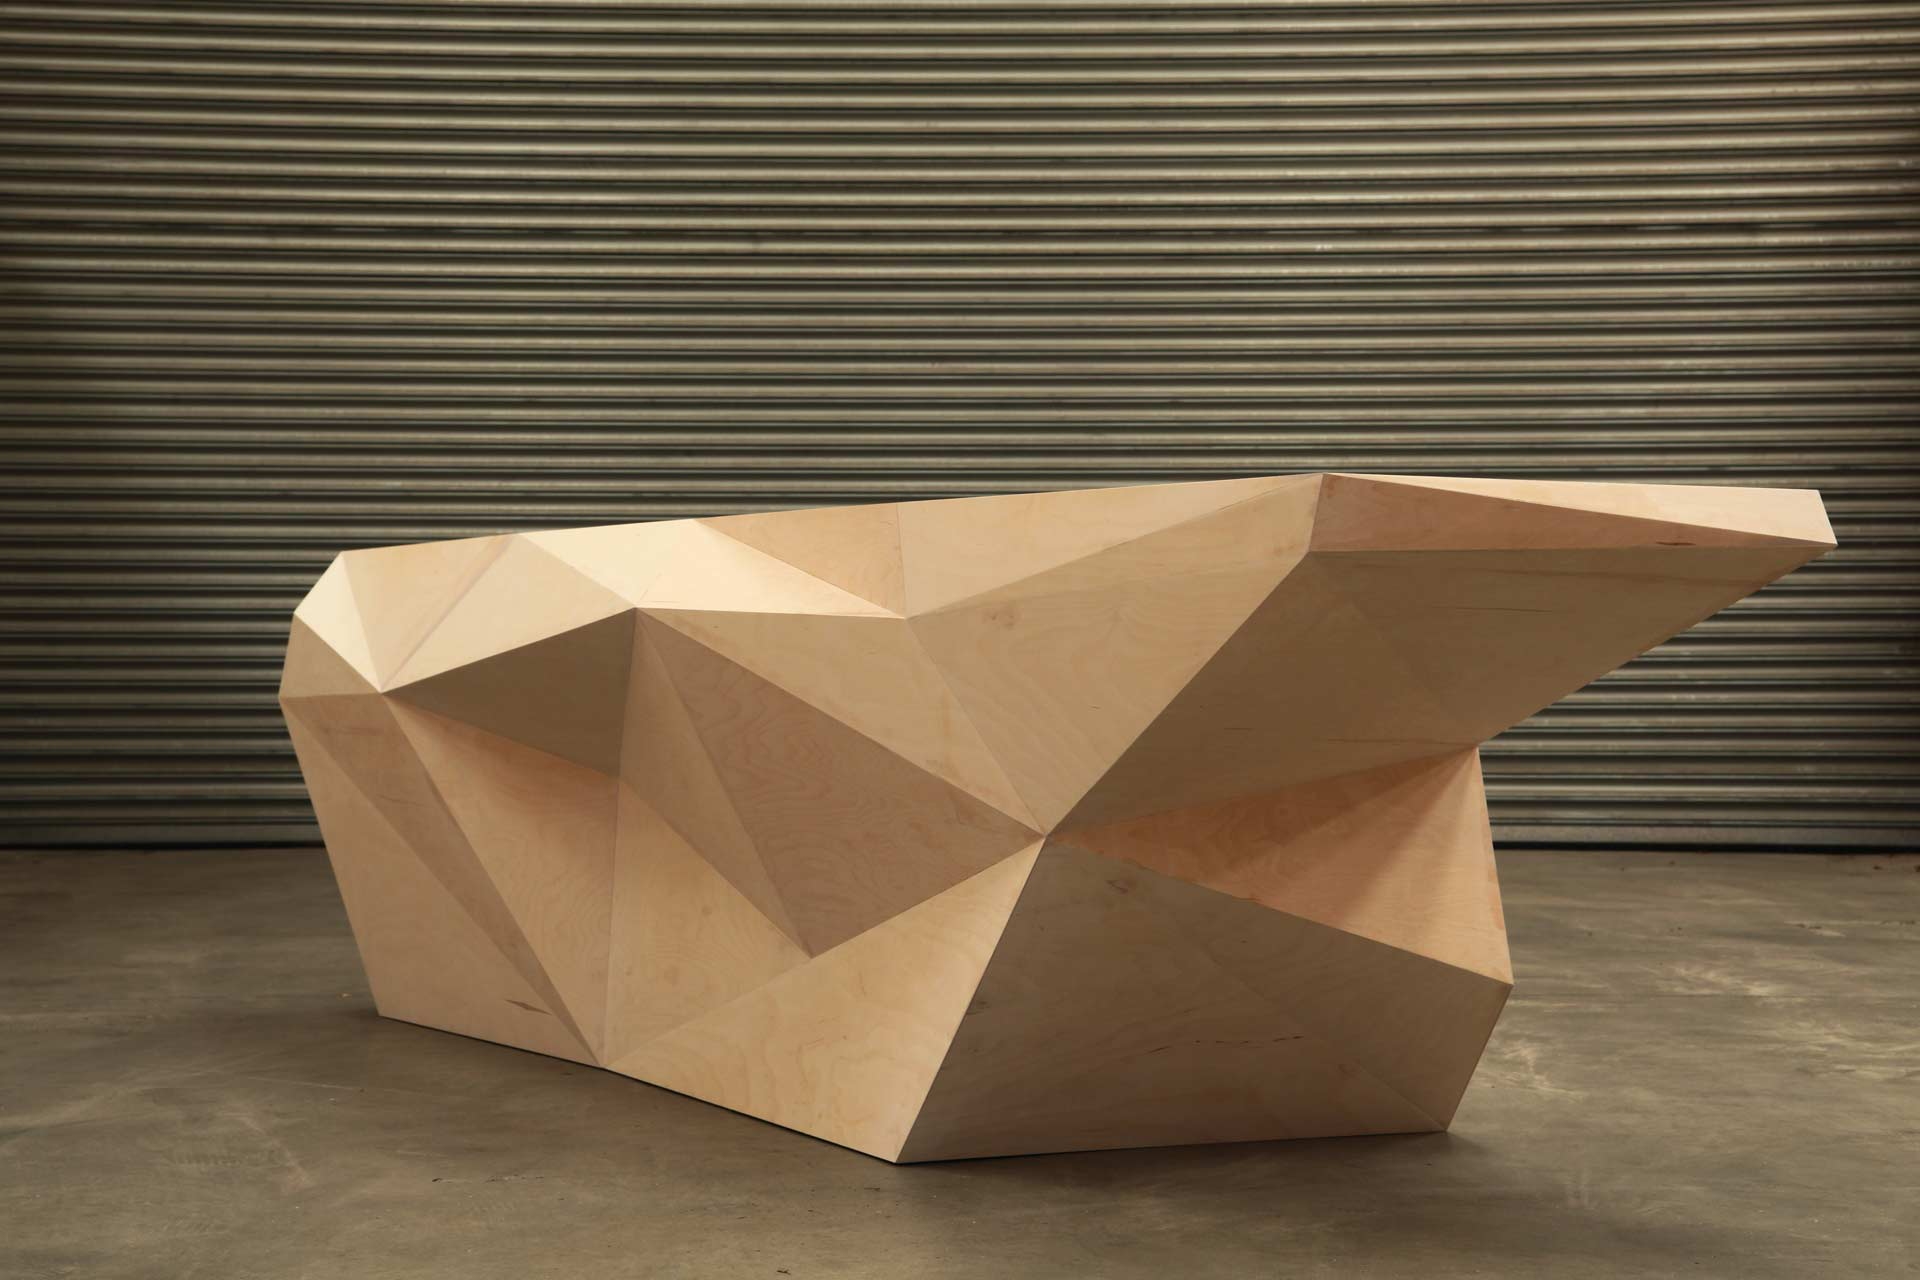 Reception desk constructed from CNC cut plywood panels generated directly from the 3D CAD model